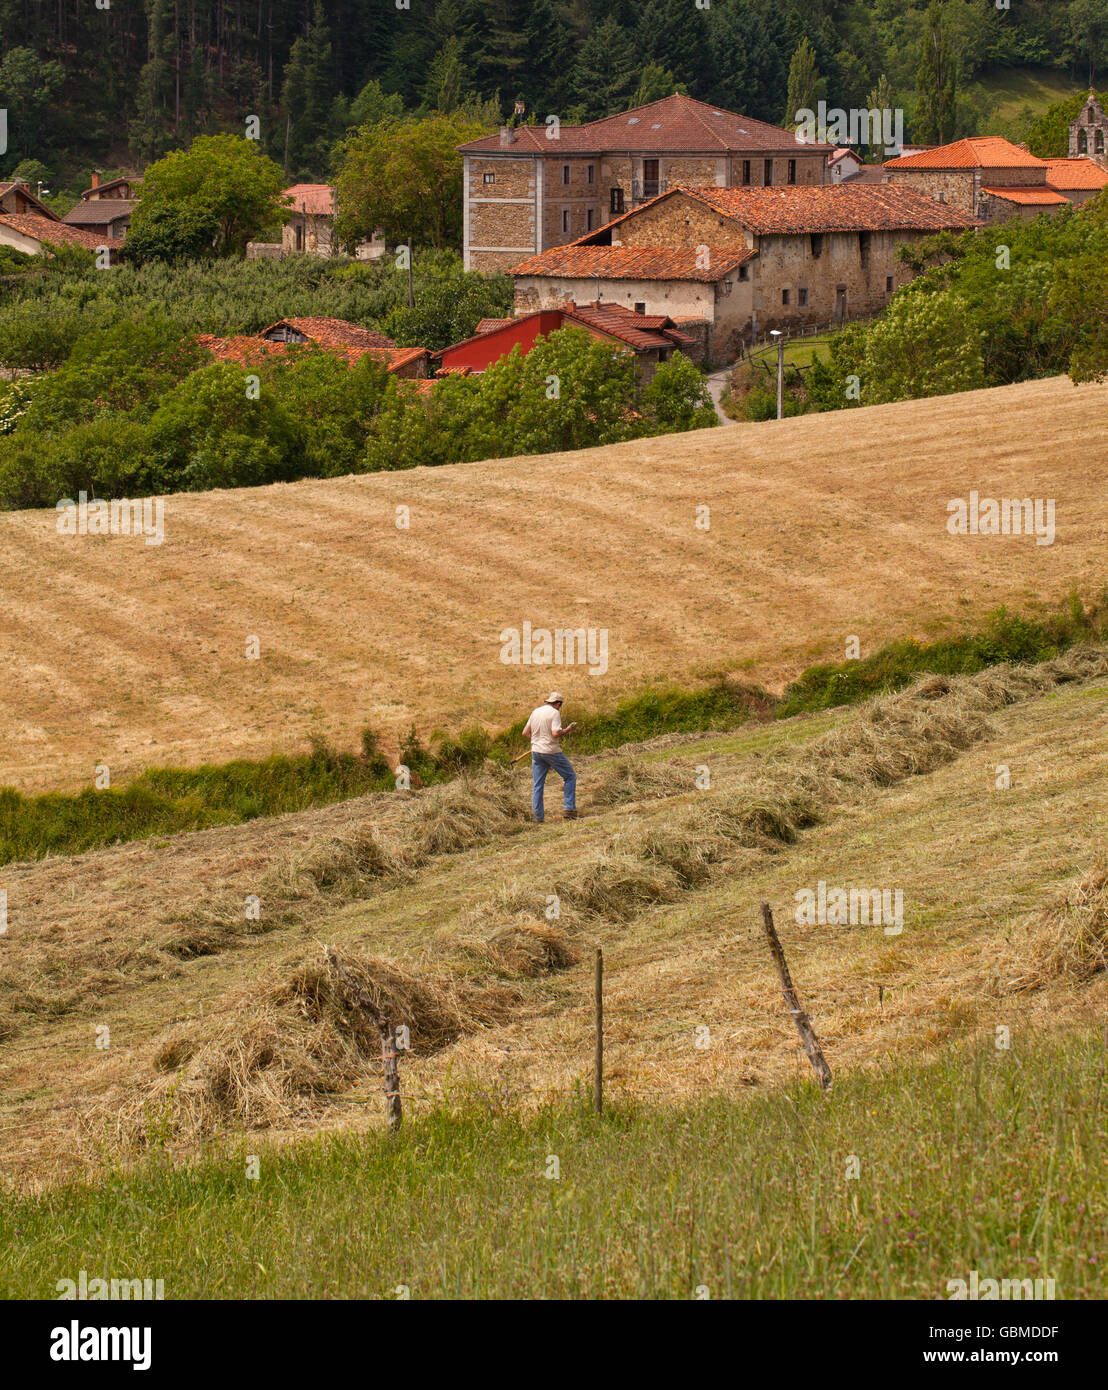 Hay making by traditional farming methods at a farm in Turieno in the Picos de Europa Northern Spain - Stock Image